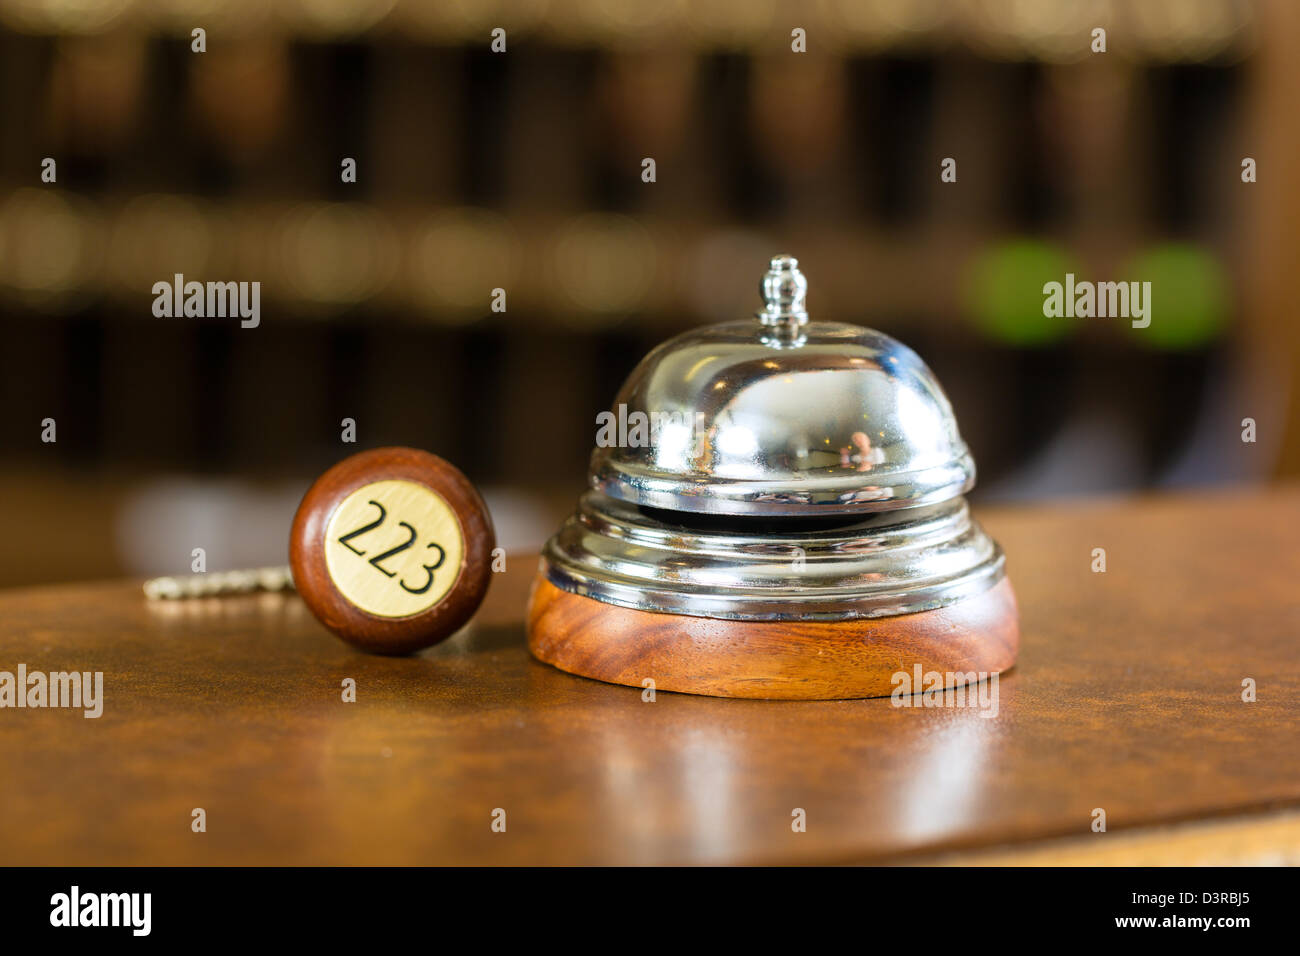 Reception - Hotel bell and key lying on the desk - Stock Image